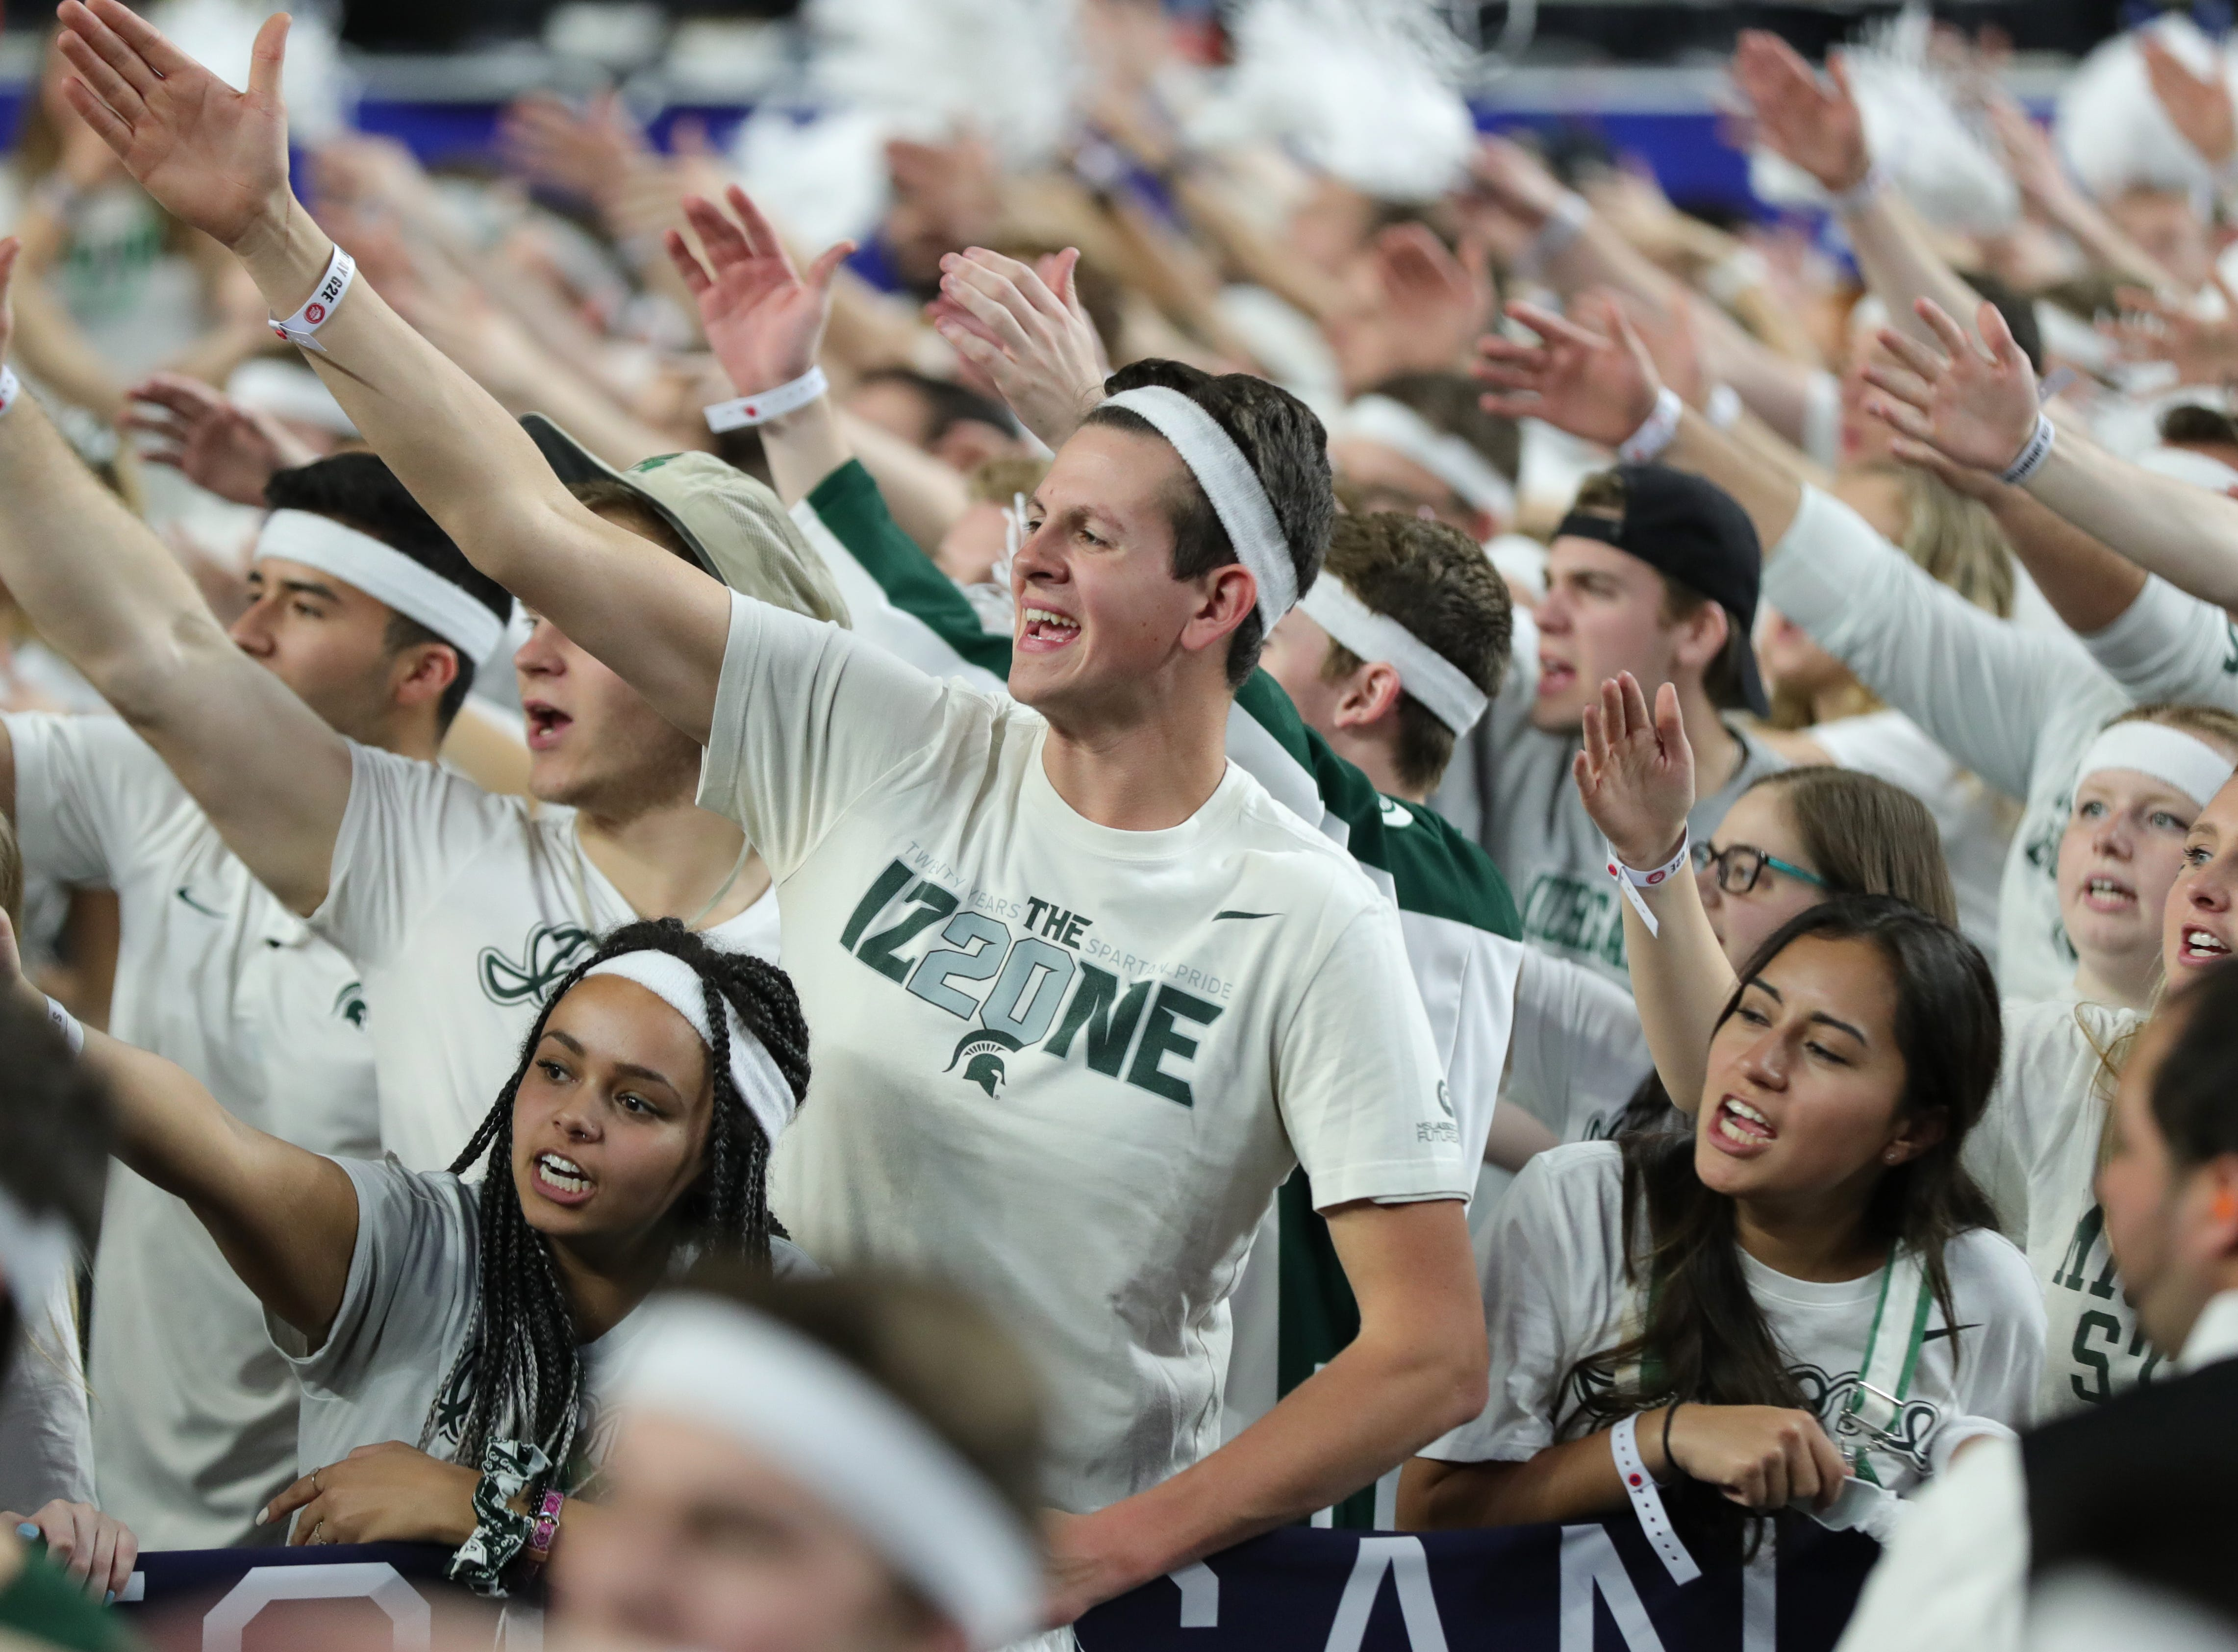 Michigan State fans chant in the student section Cassius at the Final Four at U.S. Bank Stadium in Minneapolis, Minnesota on Saturday, April 06, 2019.